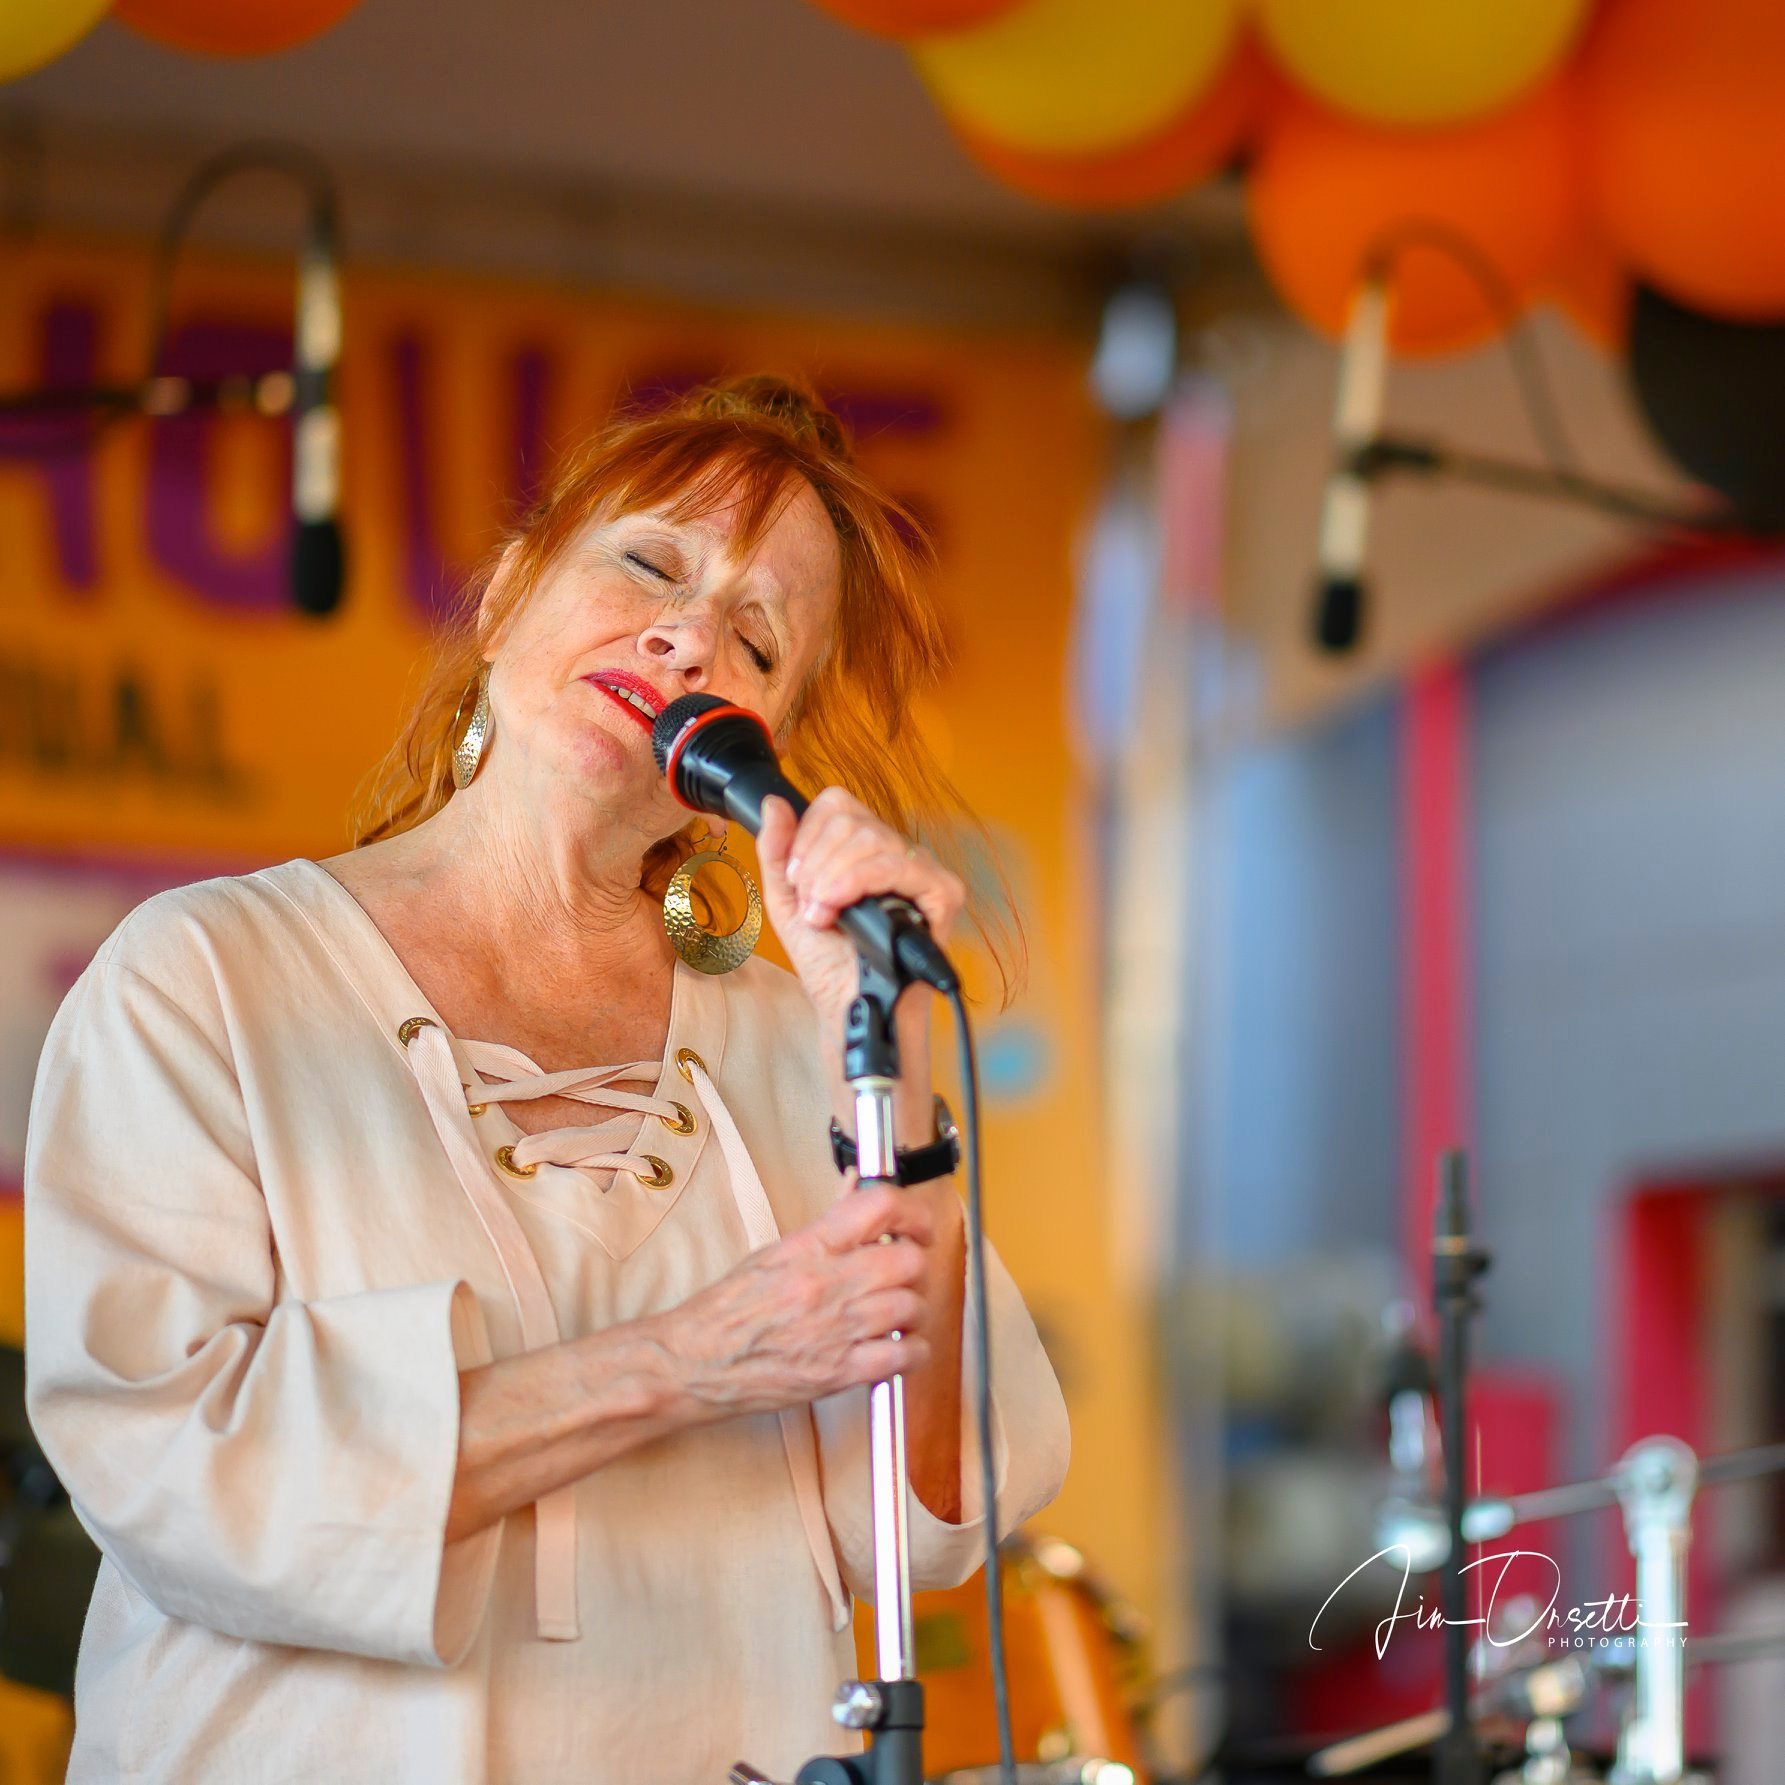 Madeline Eastman at the 2nd Annual 7 Mile House Jazz Fest 2019